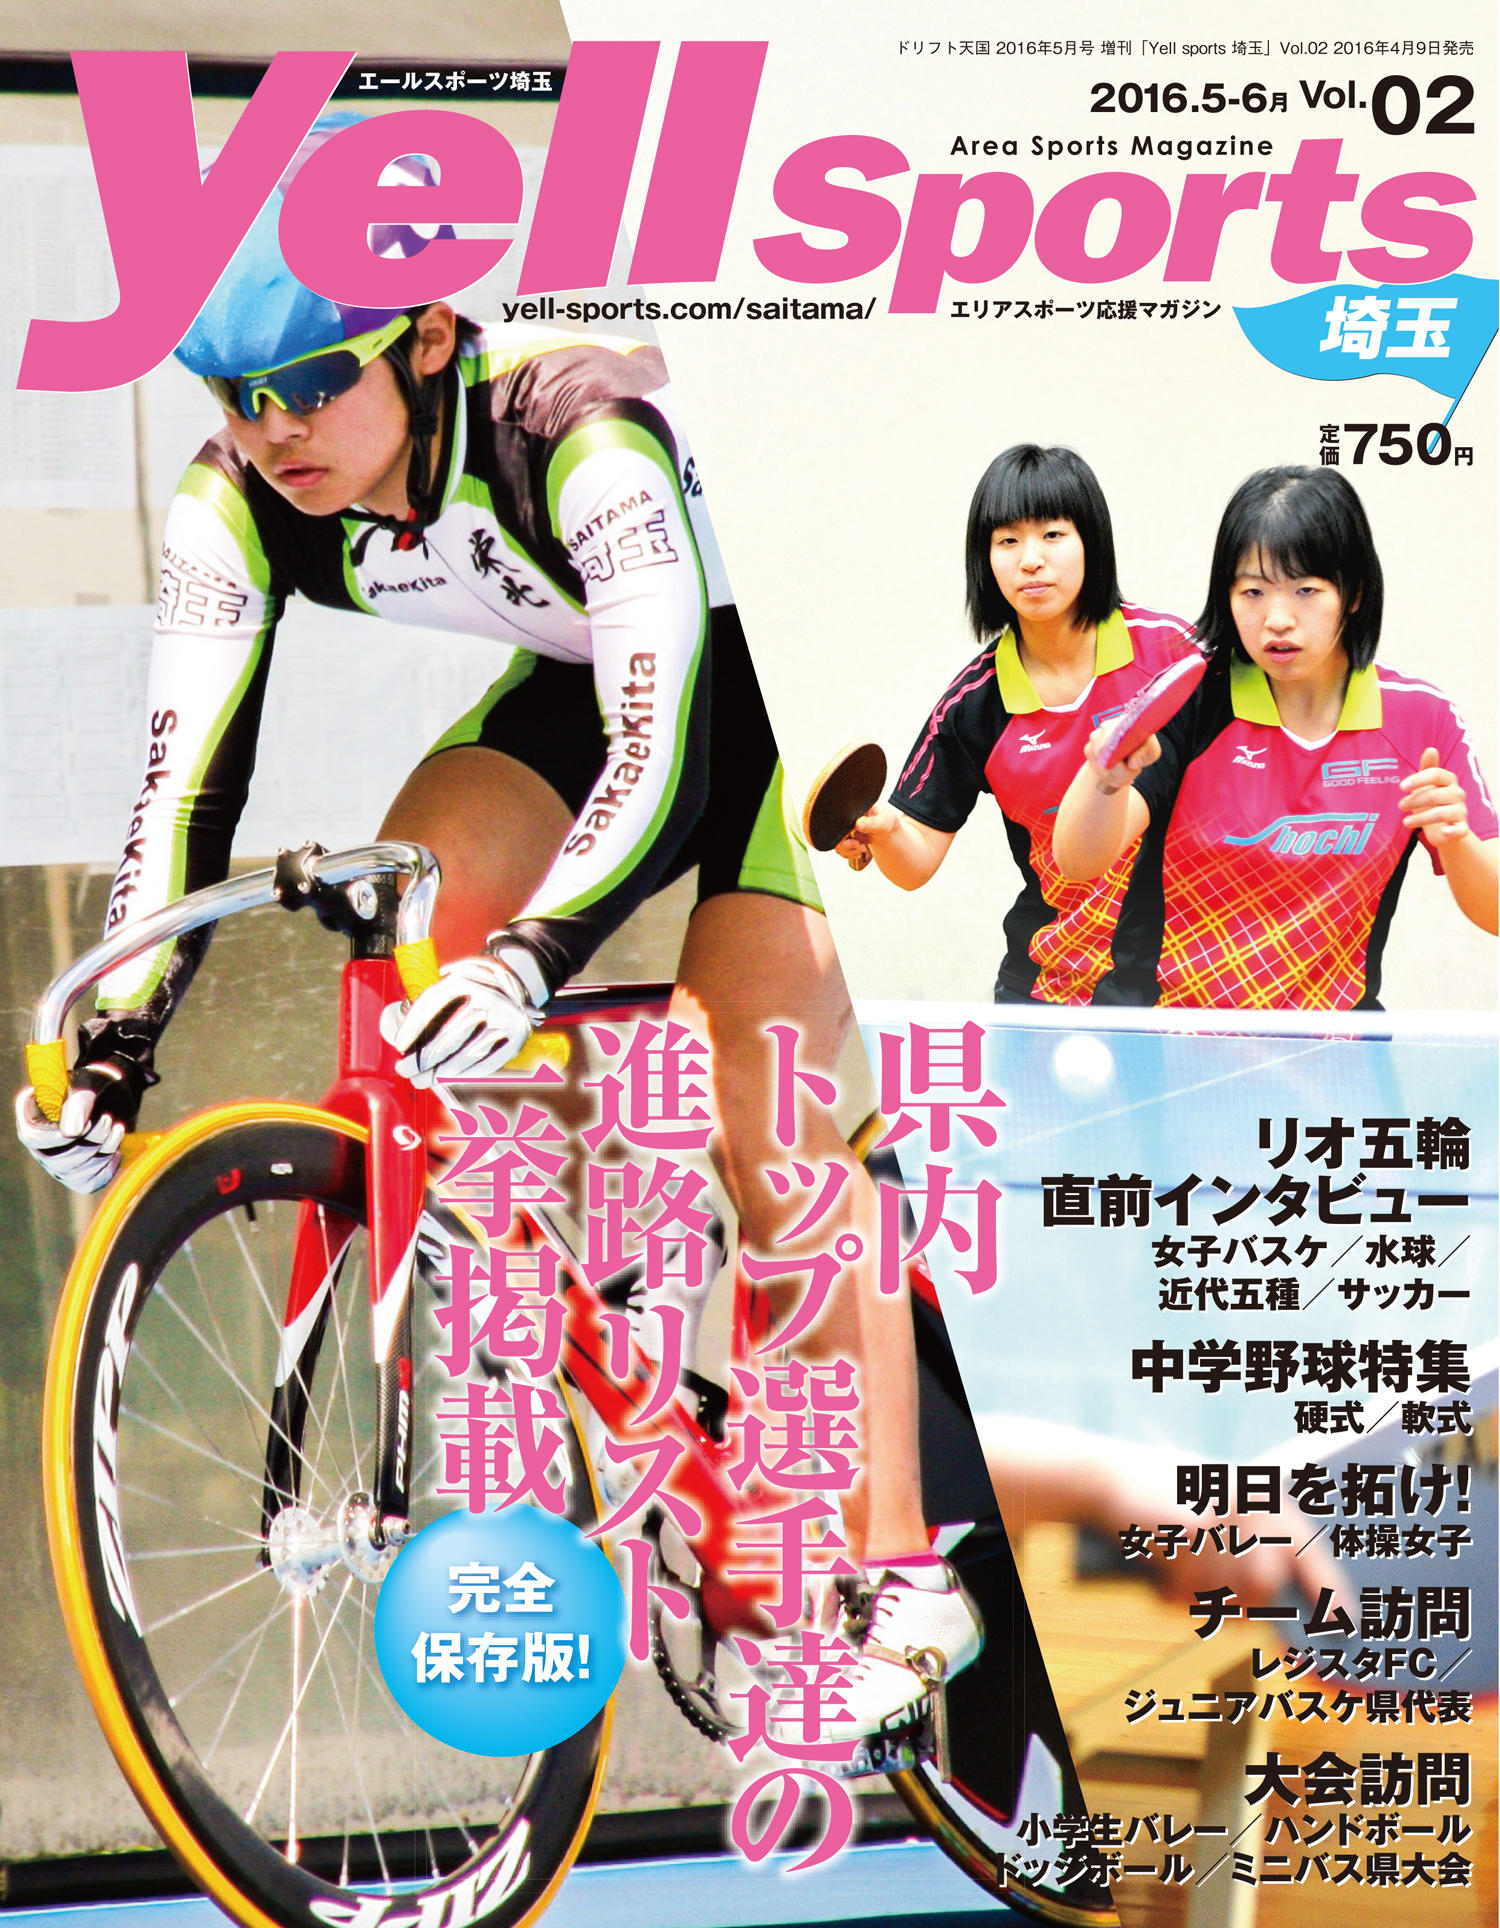 http://yell-sports.com/saitama/article/2016/yss_02_H01.jpg